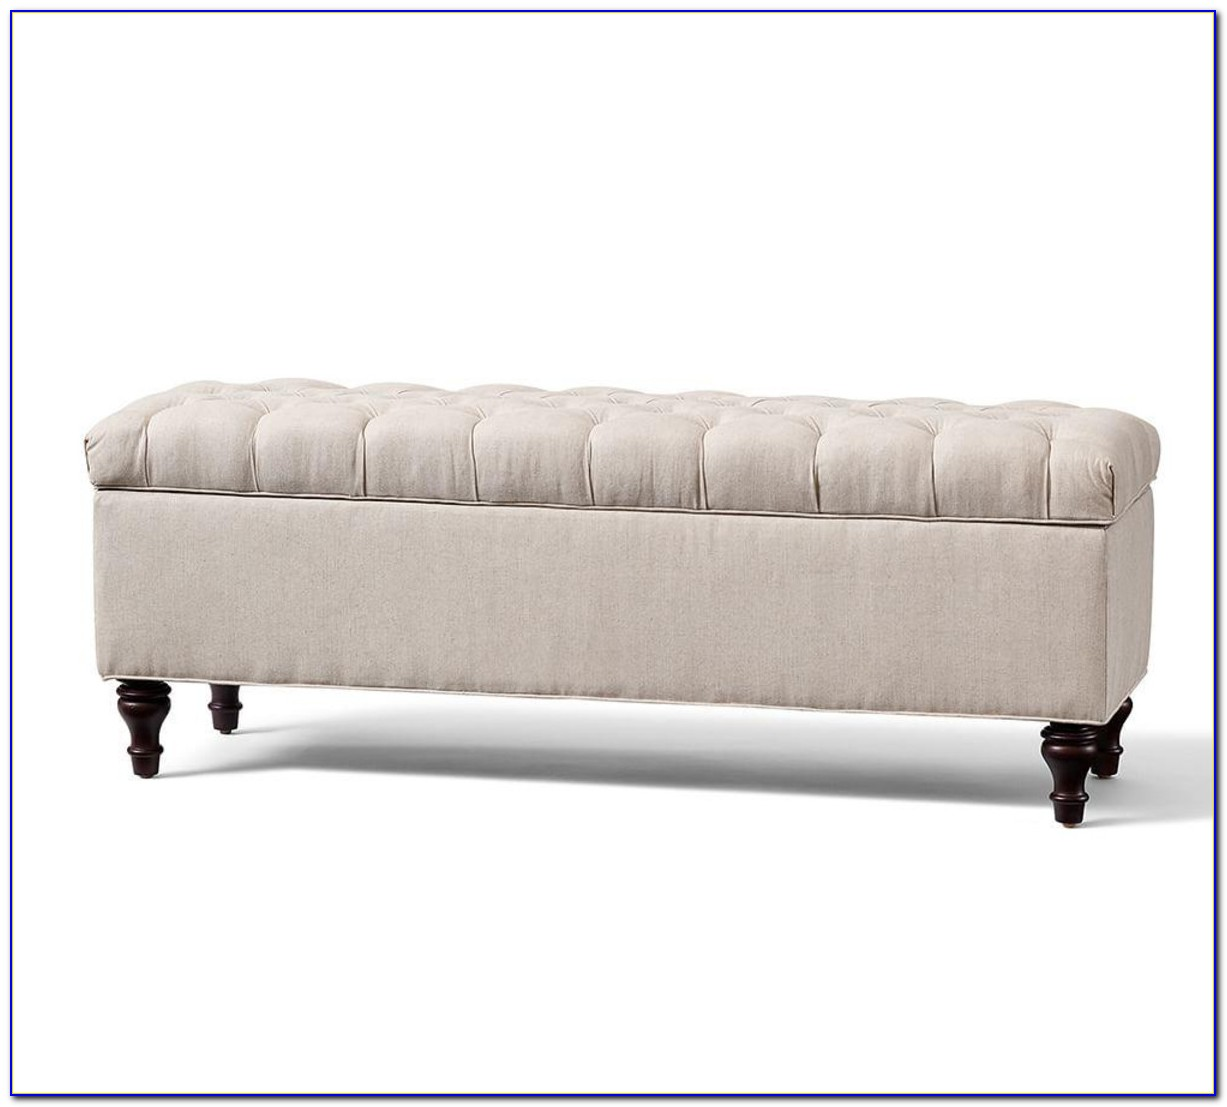 Tufted Bench With Storage